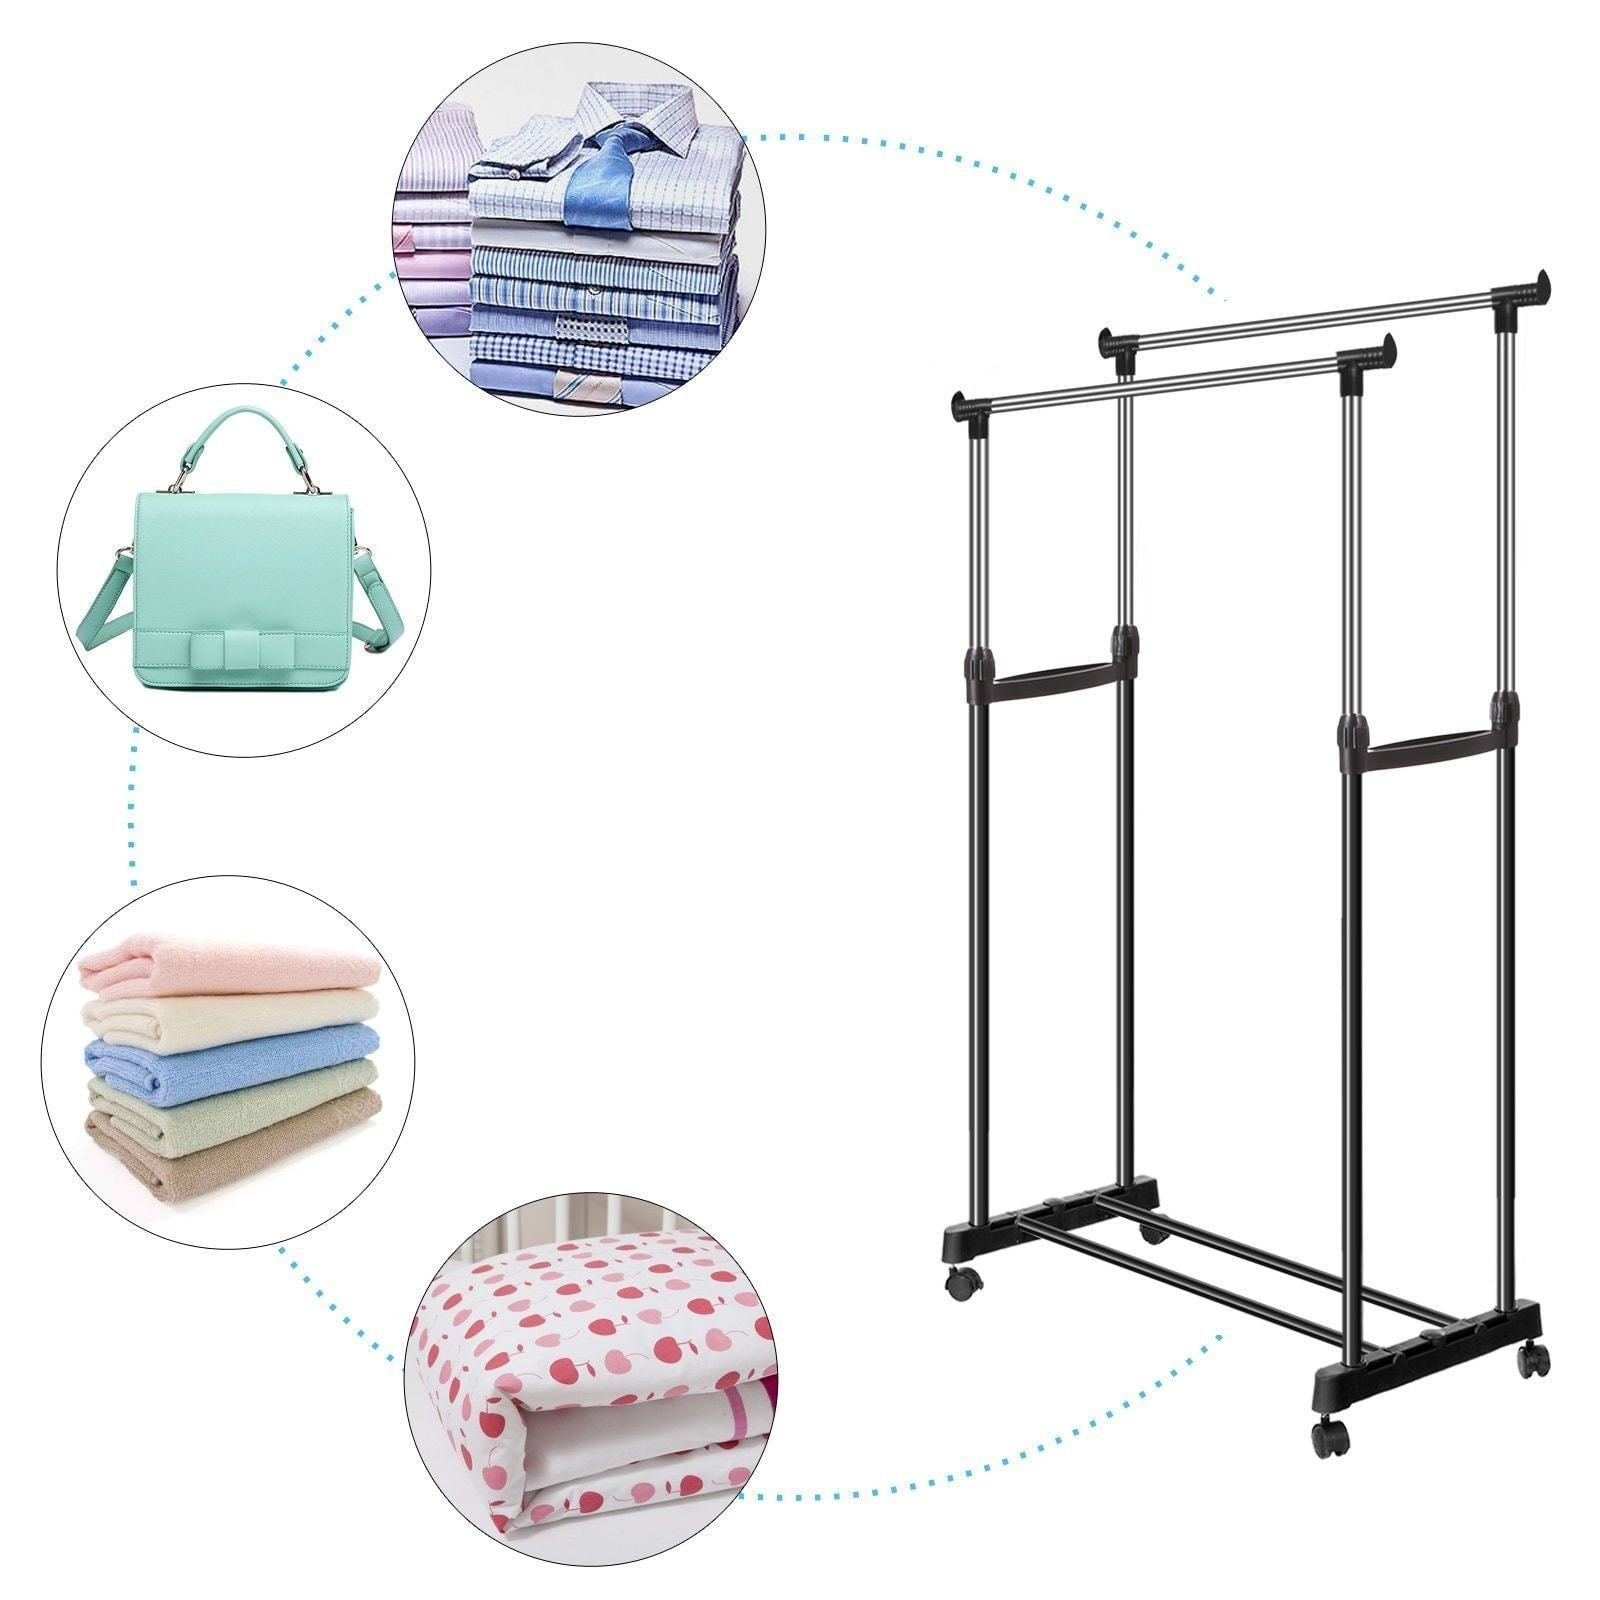 Bluefringe Drying Rack Best Houseware Heavy Duty Double Rail Clothes Laundry Cloth Dryer Laundry Rack For Jacket,Dress,Towels,Shirts